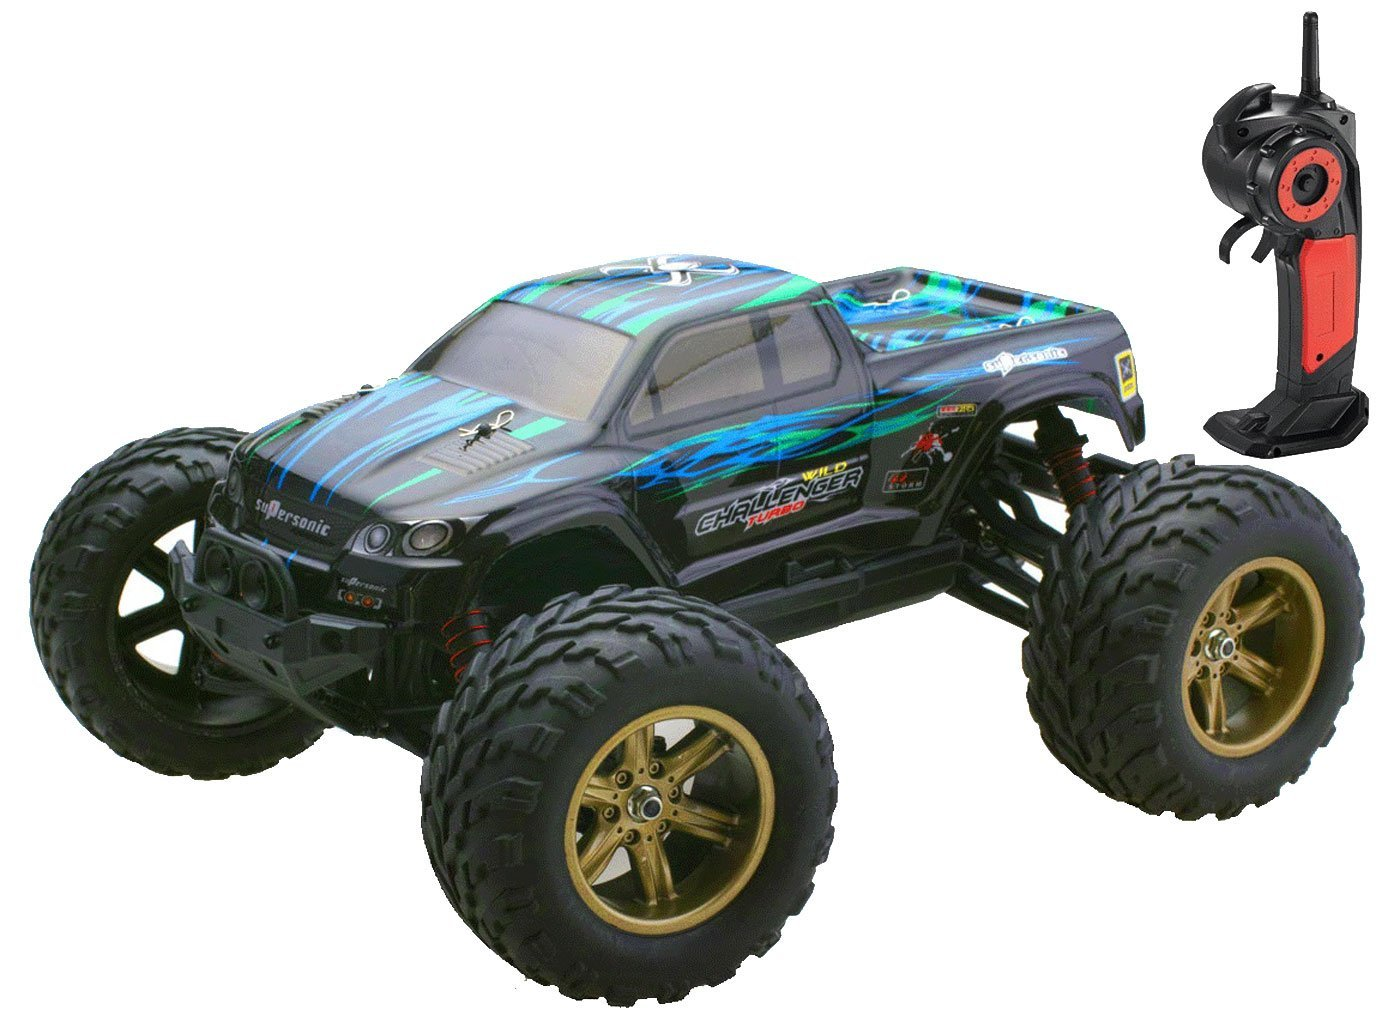 Bo Toys 1 12 Scale Electric RC Car Offroad 2.4Ghz 2WD High Speed 35 MPH Remote Controlled Truck Car by